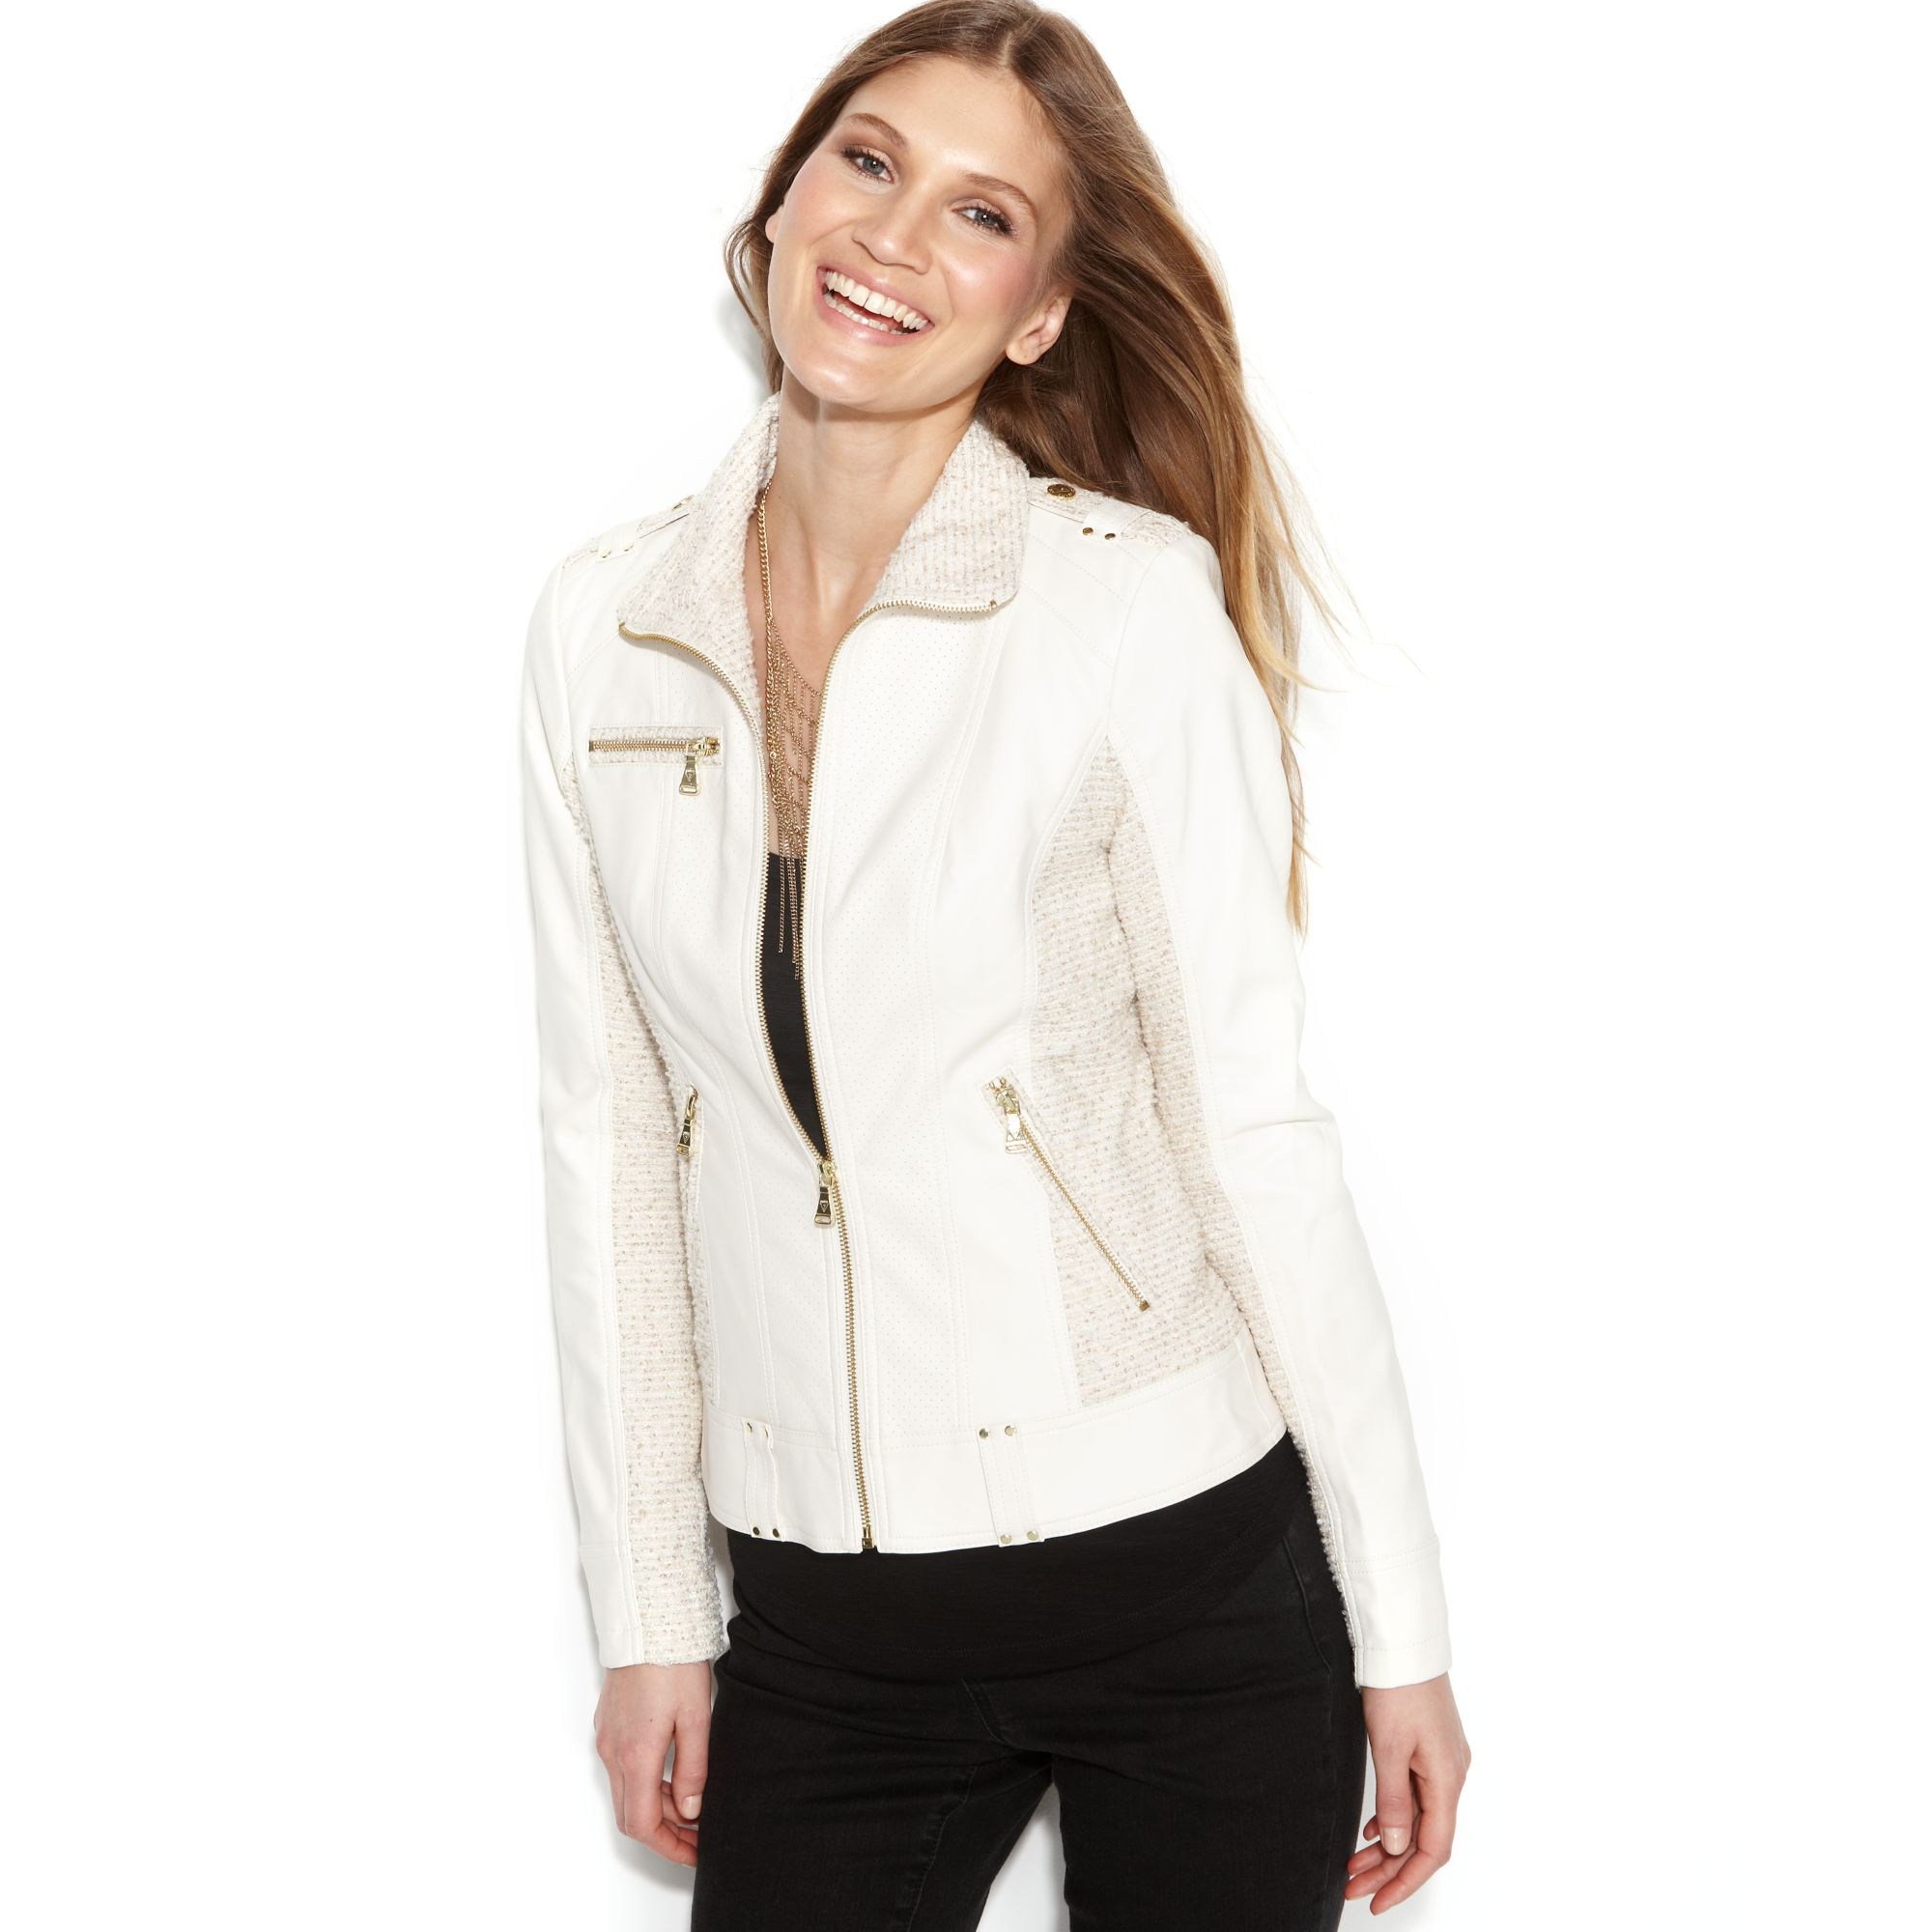 Image Result For How To Clean Faux Leather Jacket